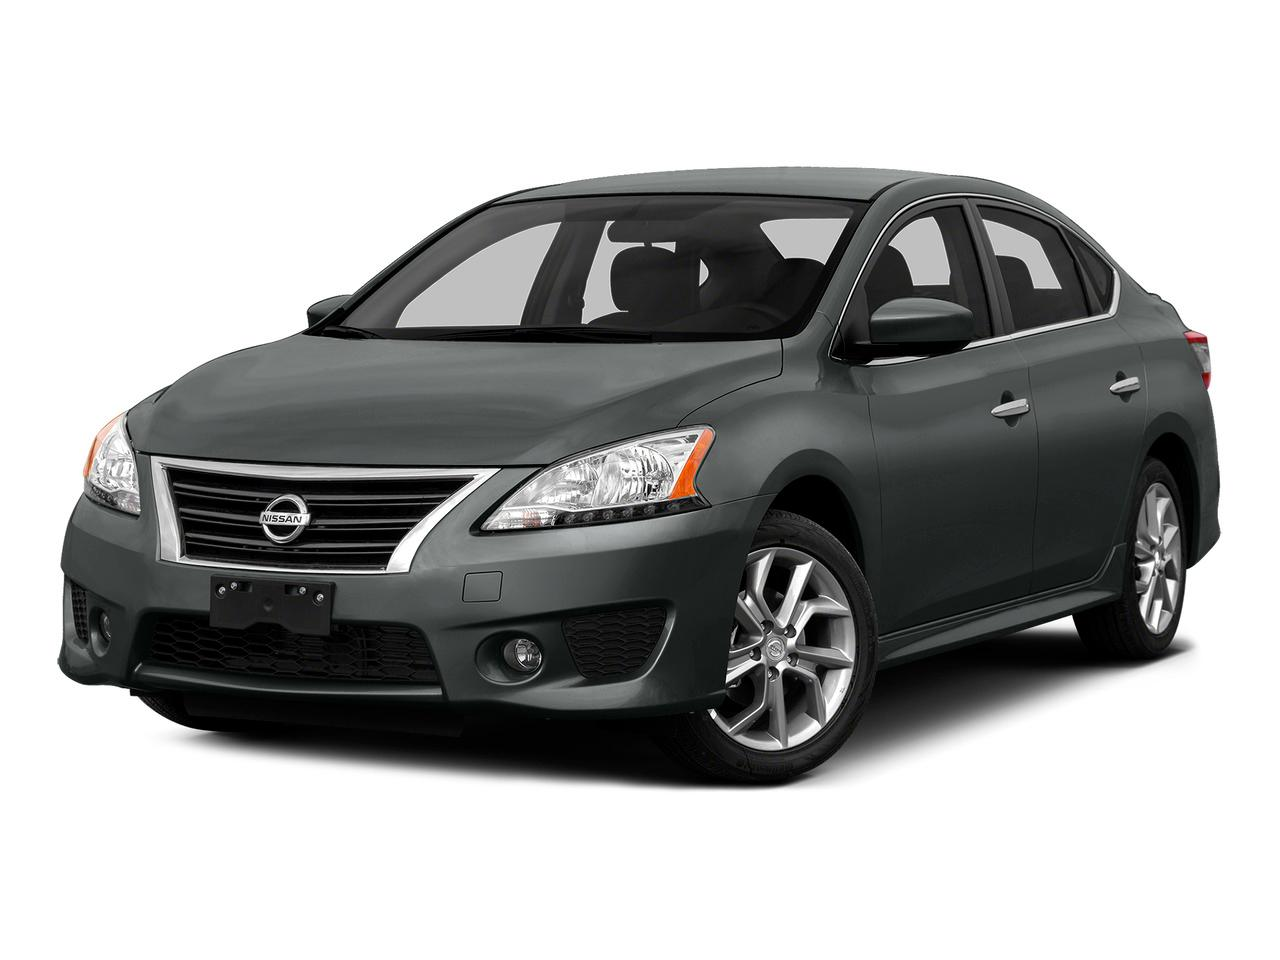 2015 Nissan Sentra Vehicle Photo in Colorado Springs, CO 80905